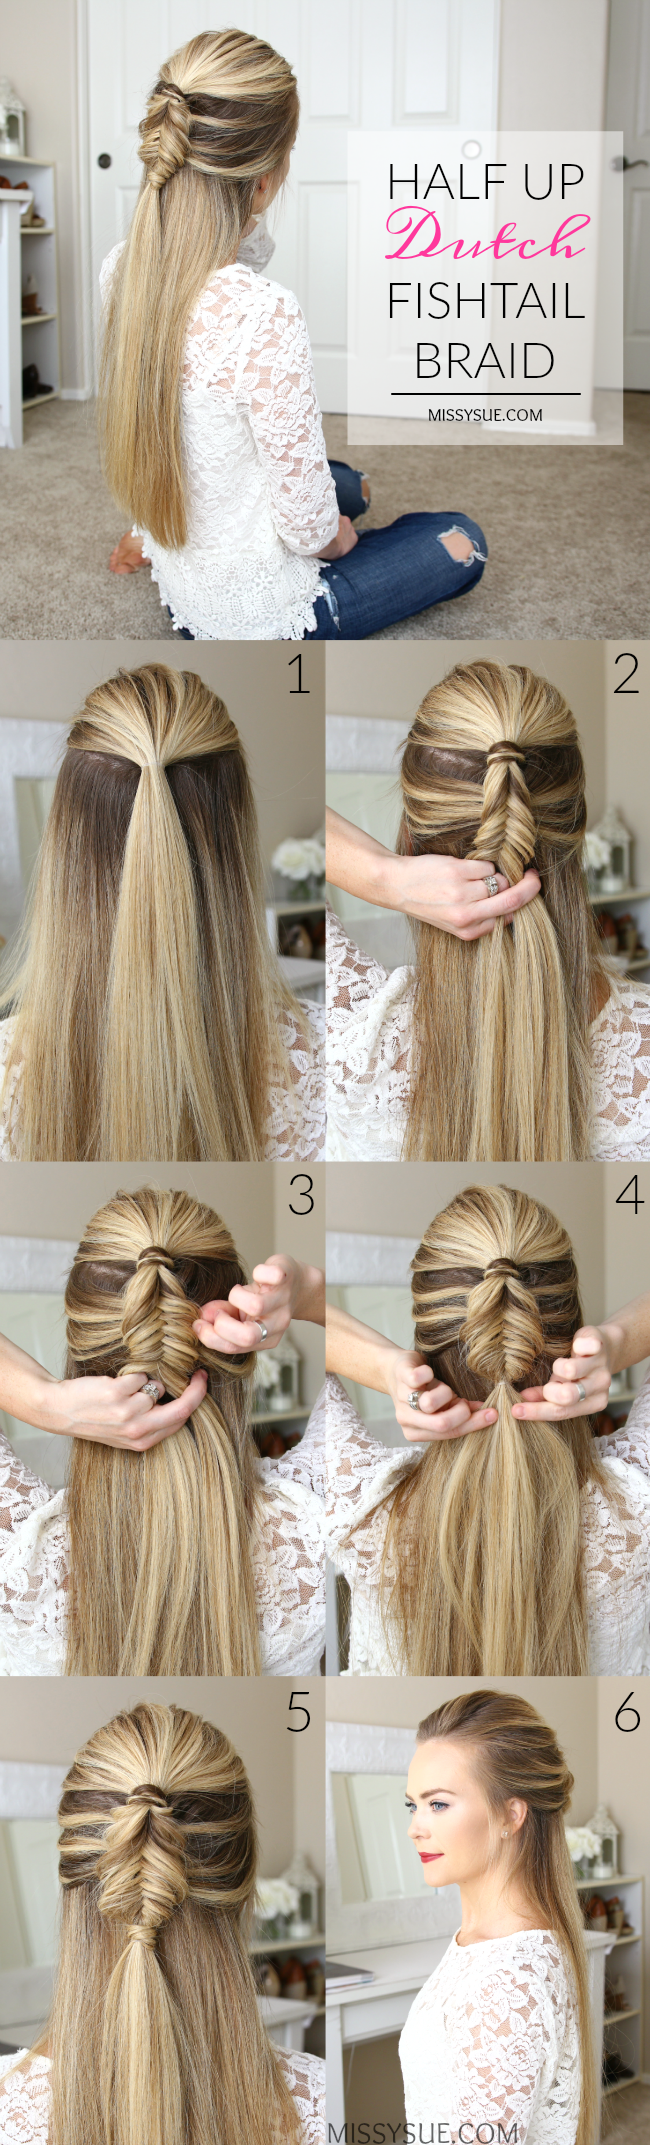 Frisur | Halb offene Dutch-Braid-Frisur